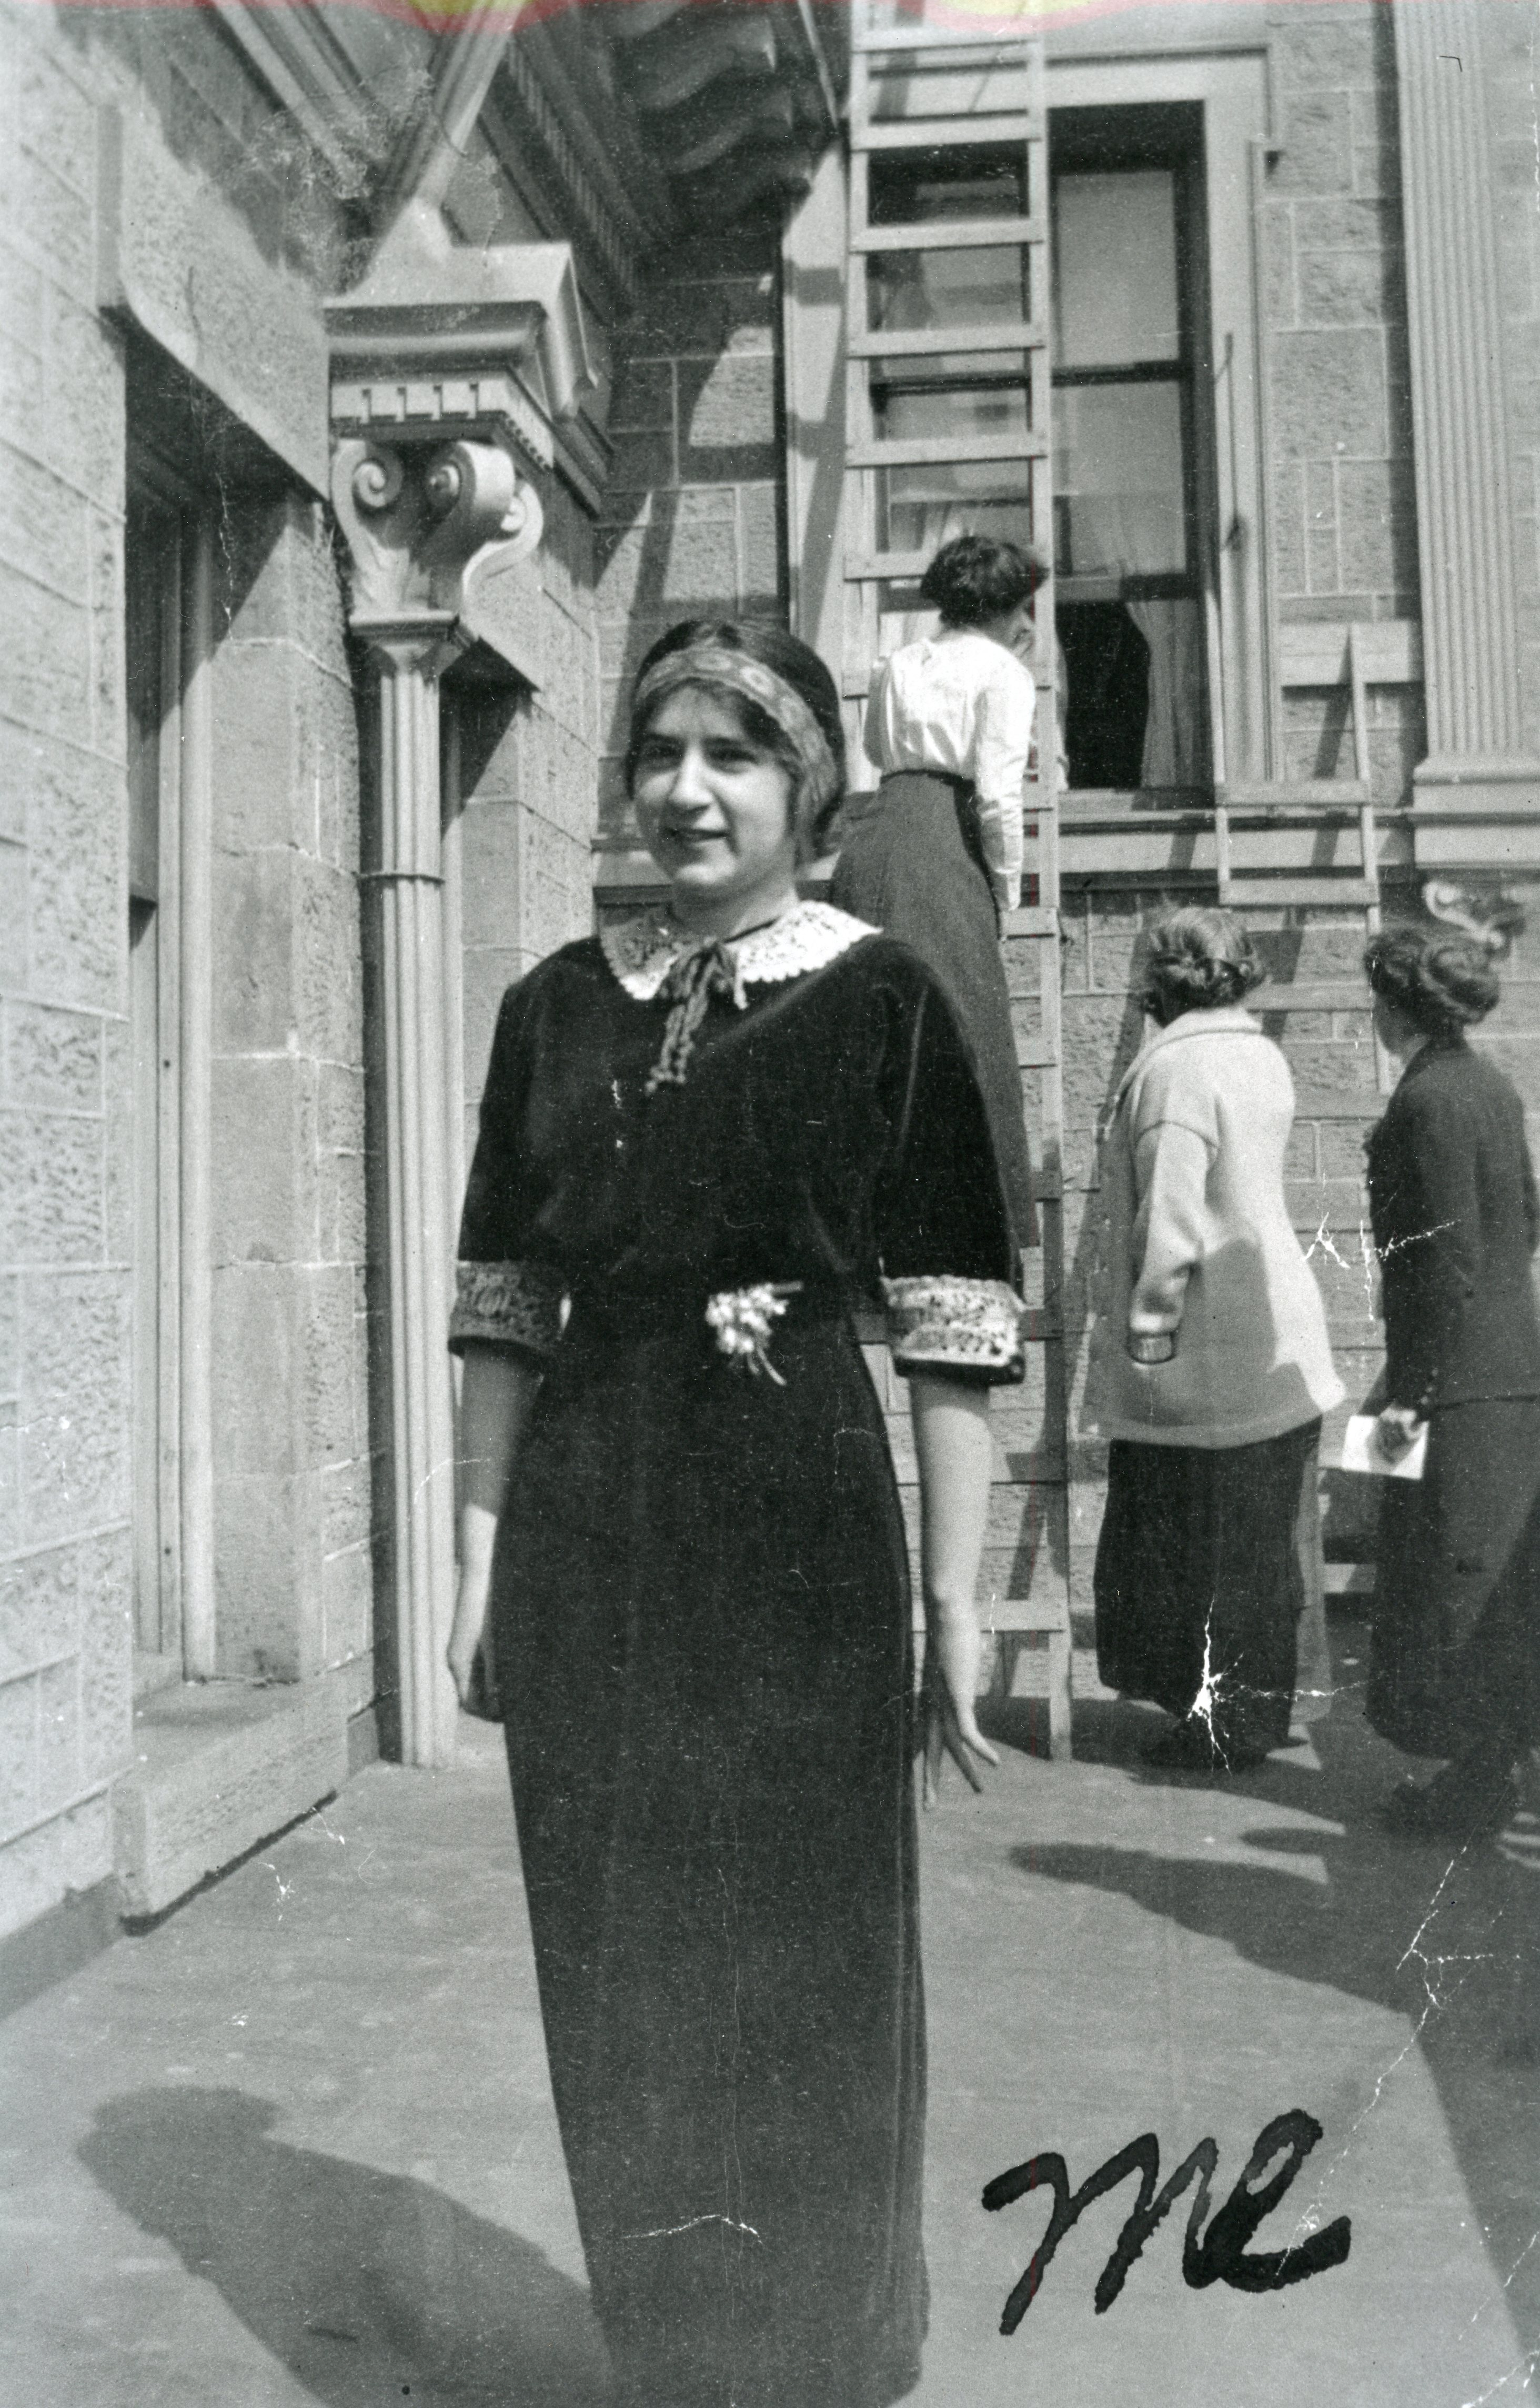 Belle Fligelman poses in front of Belle Chabourne Hall at the University of Wisconsin. MHS Photo Archives PAc 85-31